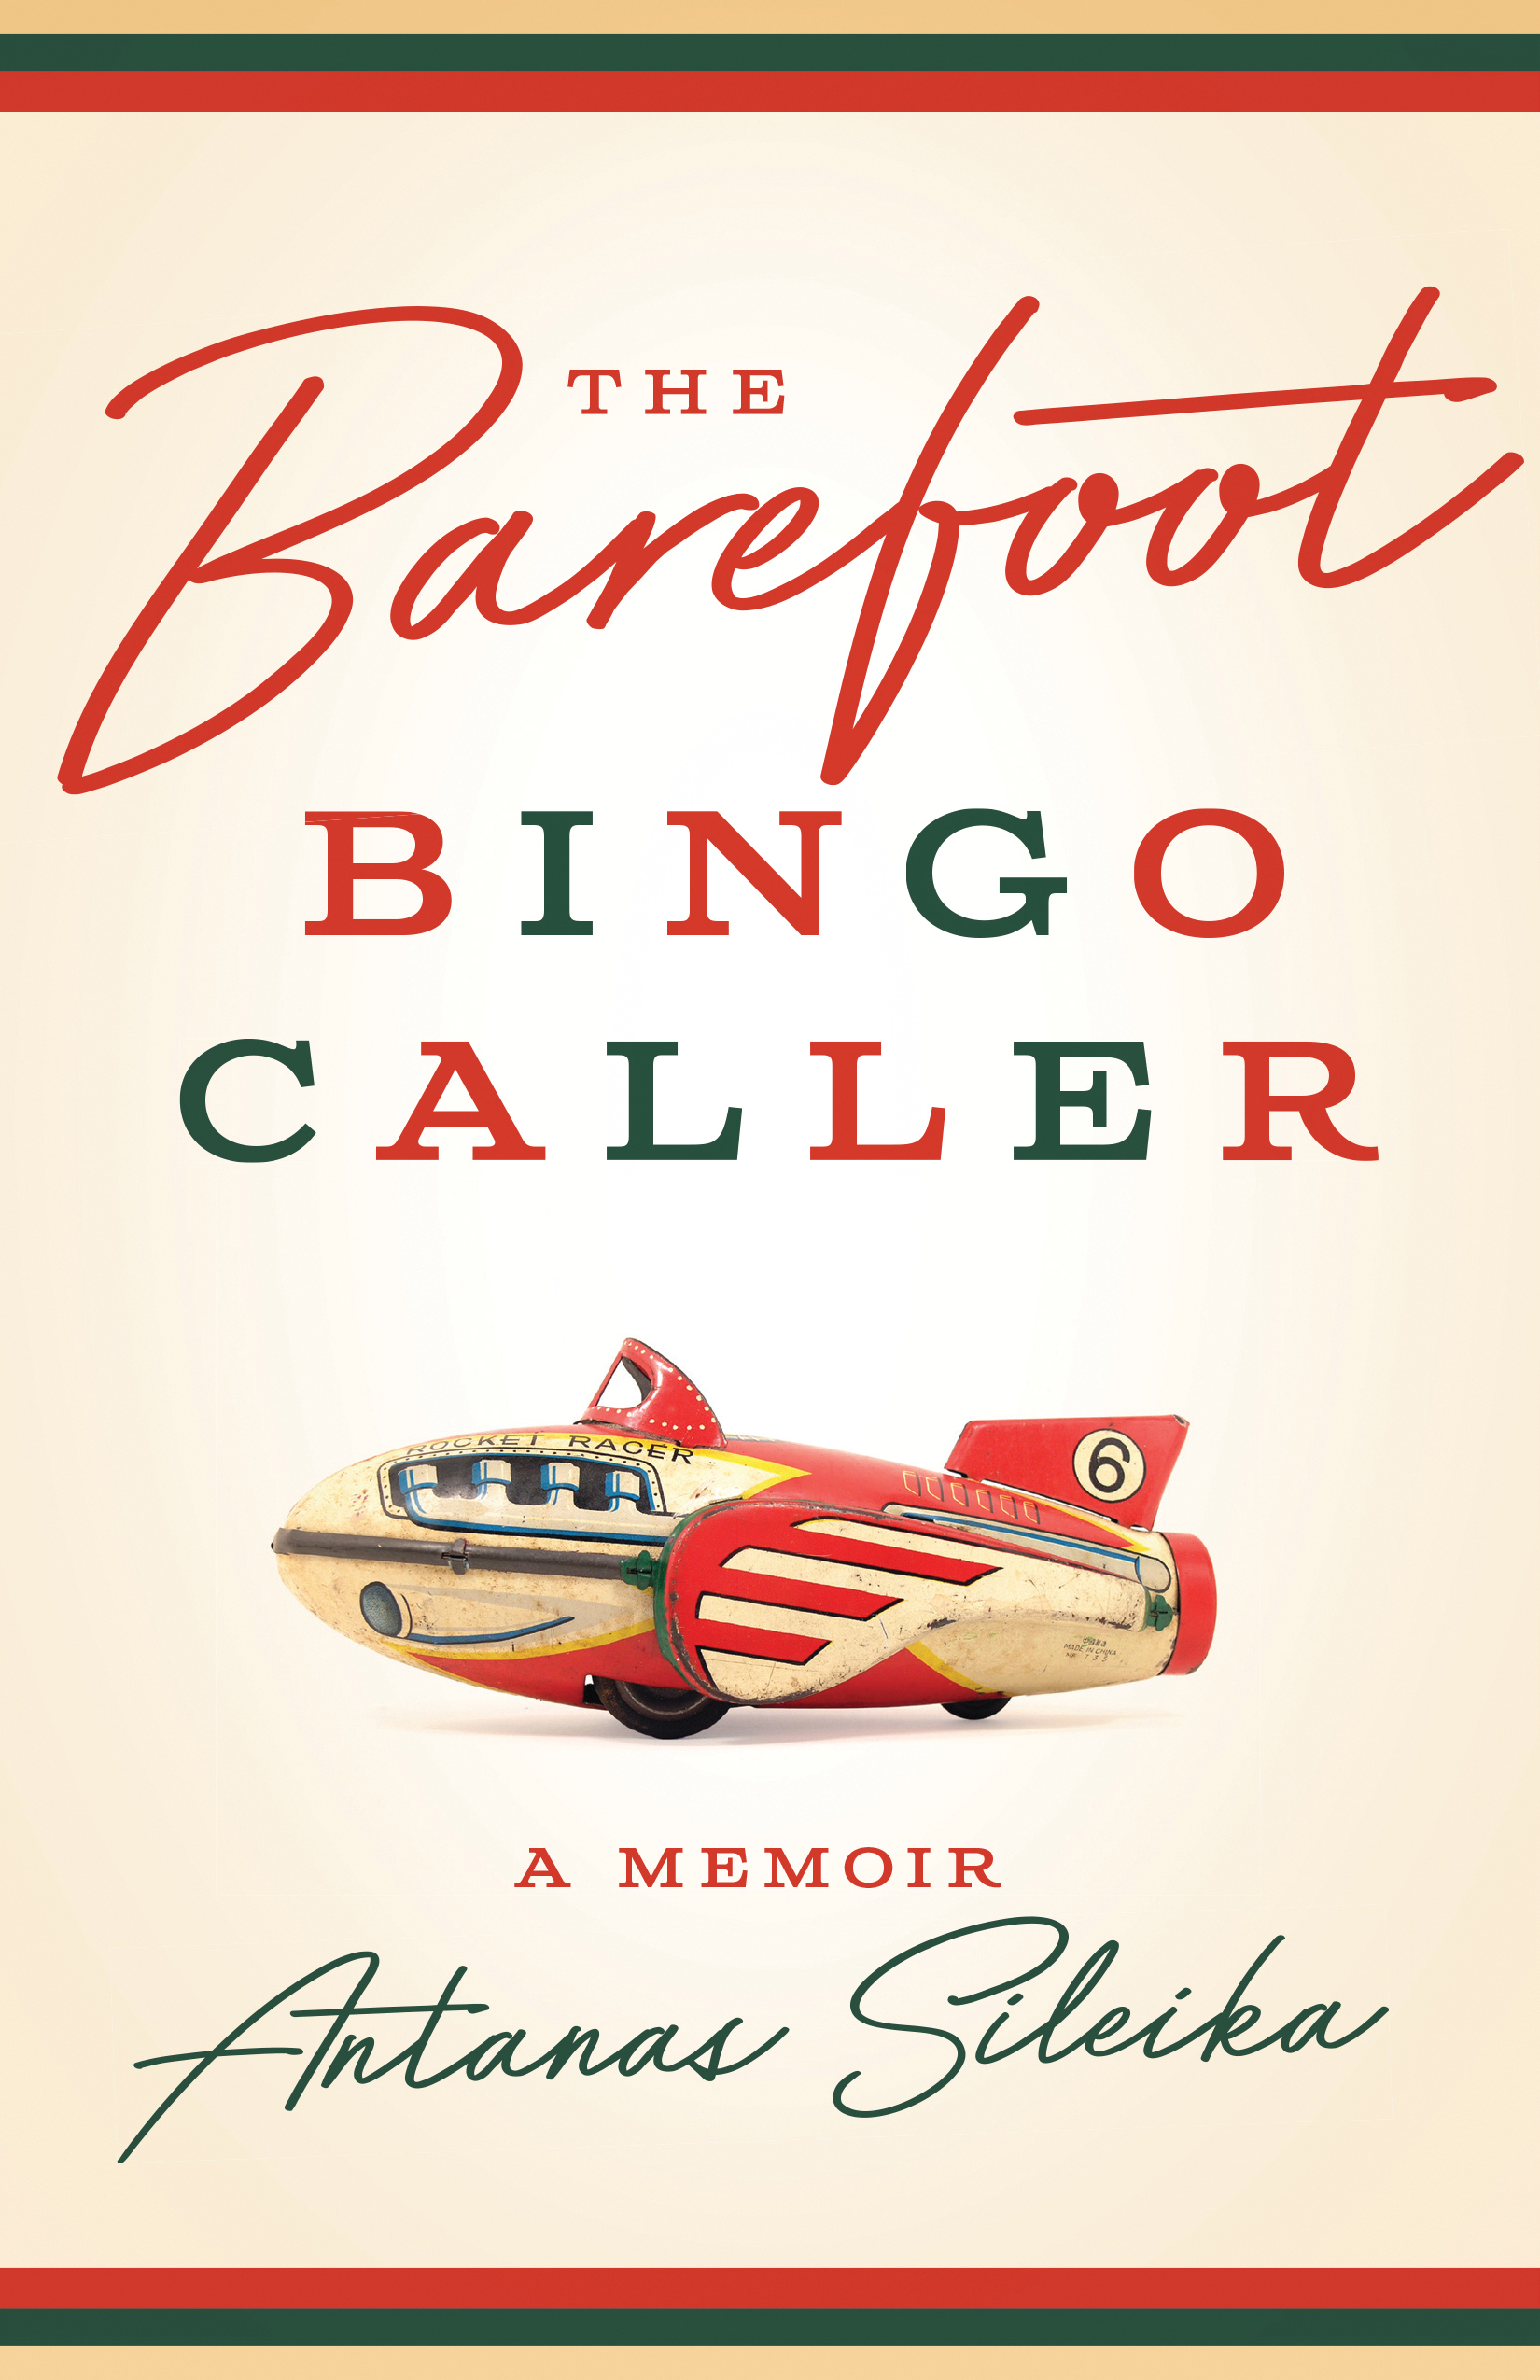 cover image for the book, The Barefoot Bingo Caller showing an image of a rocket